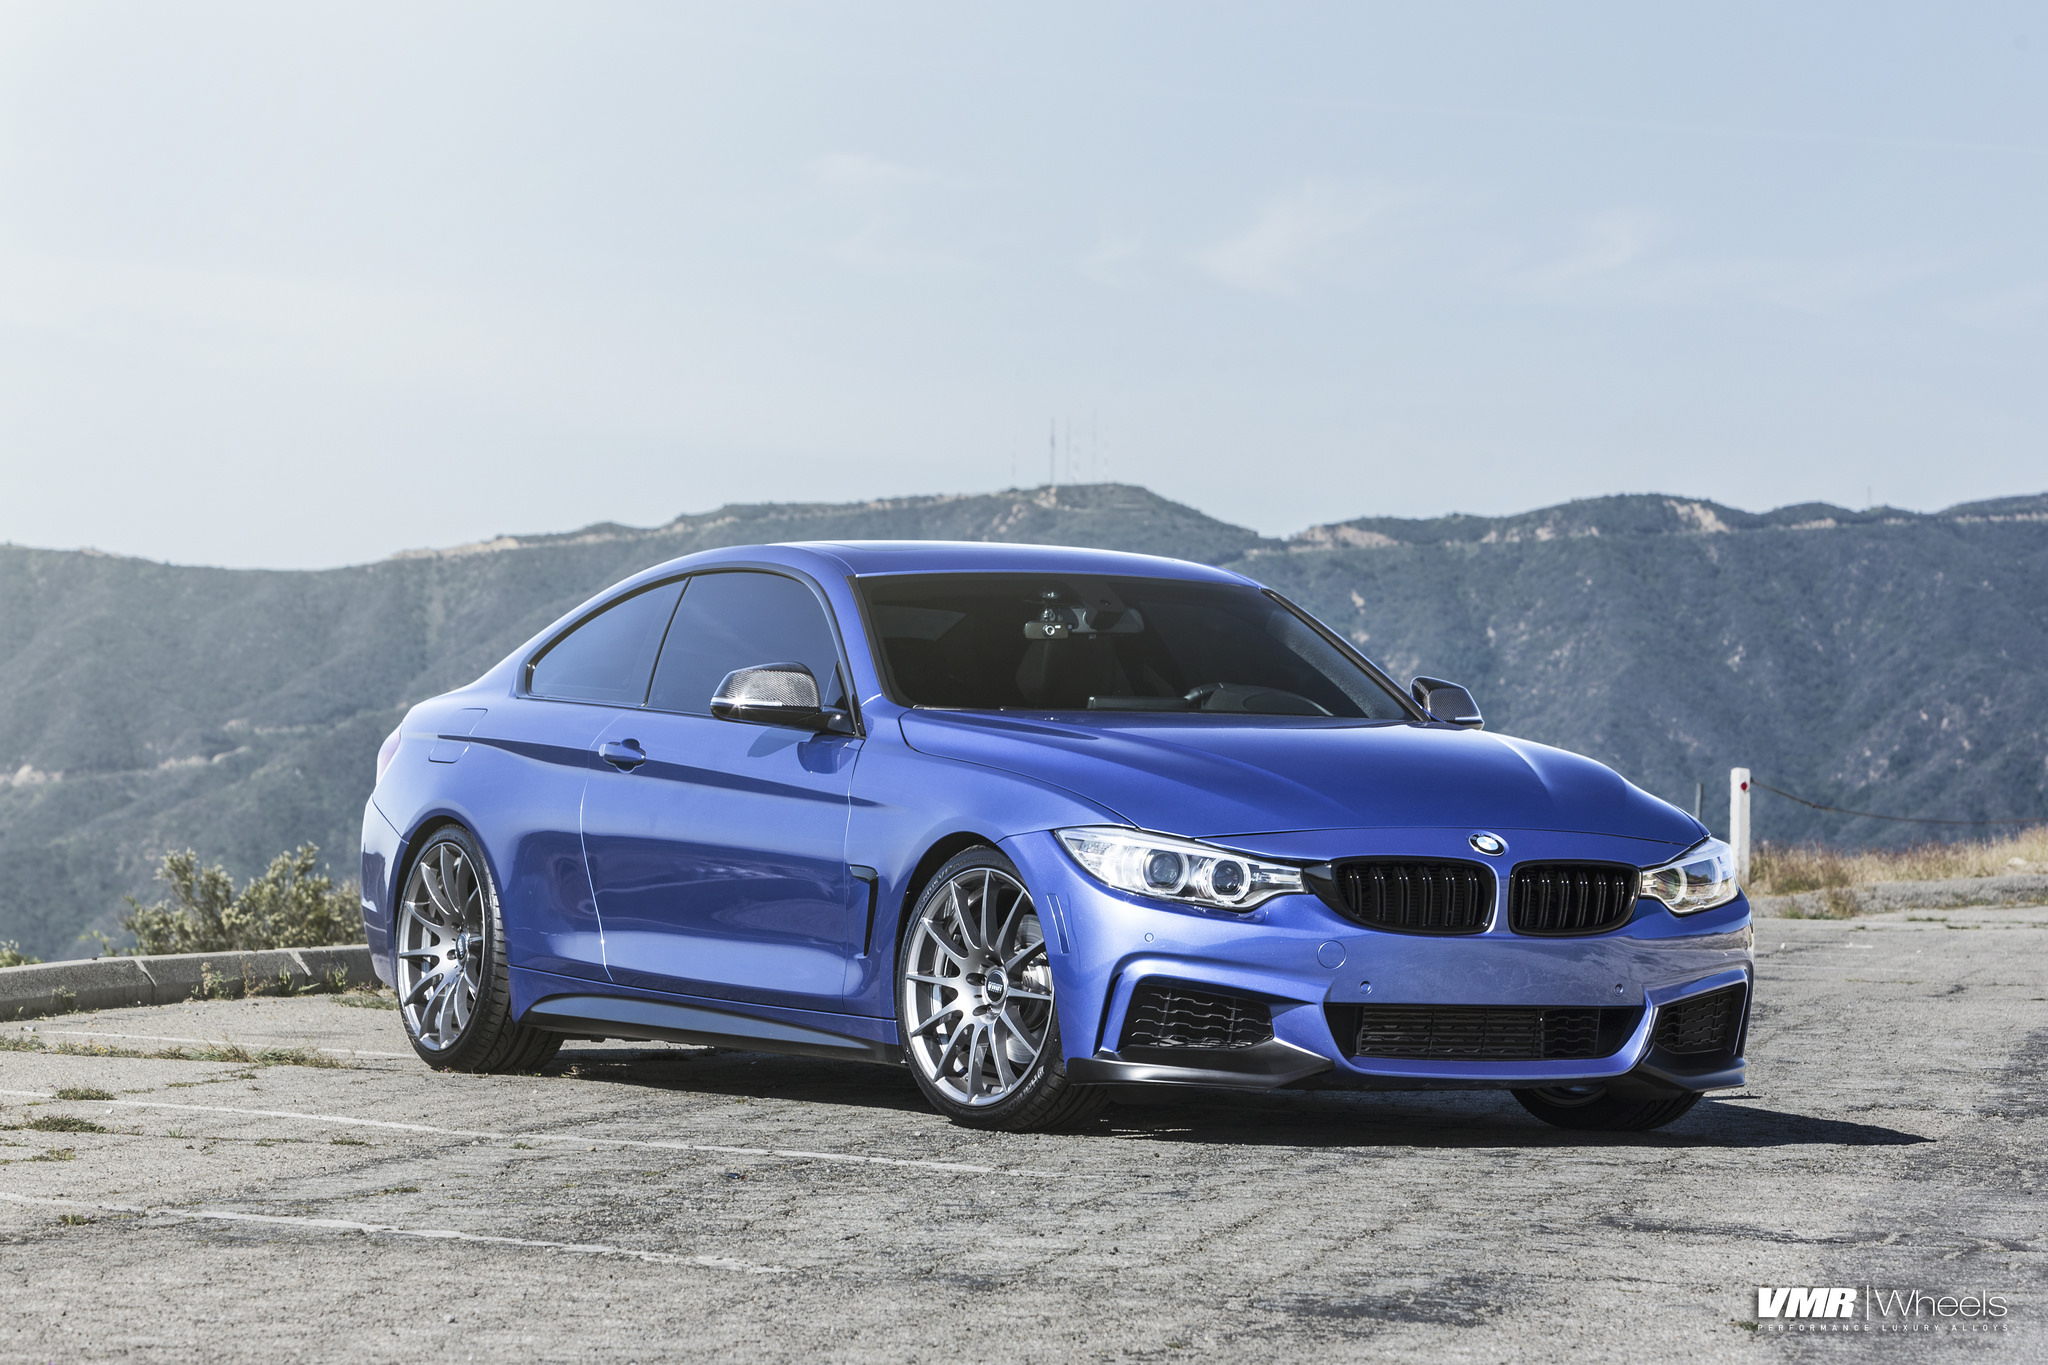 BMW 428i on VMR Wheels (1)